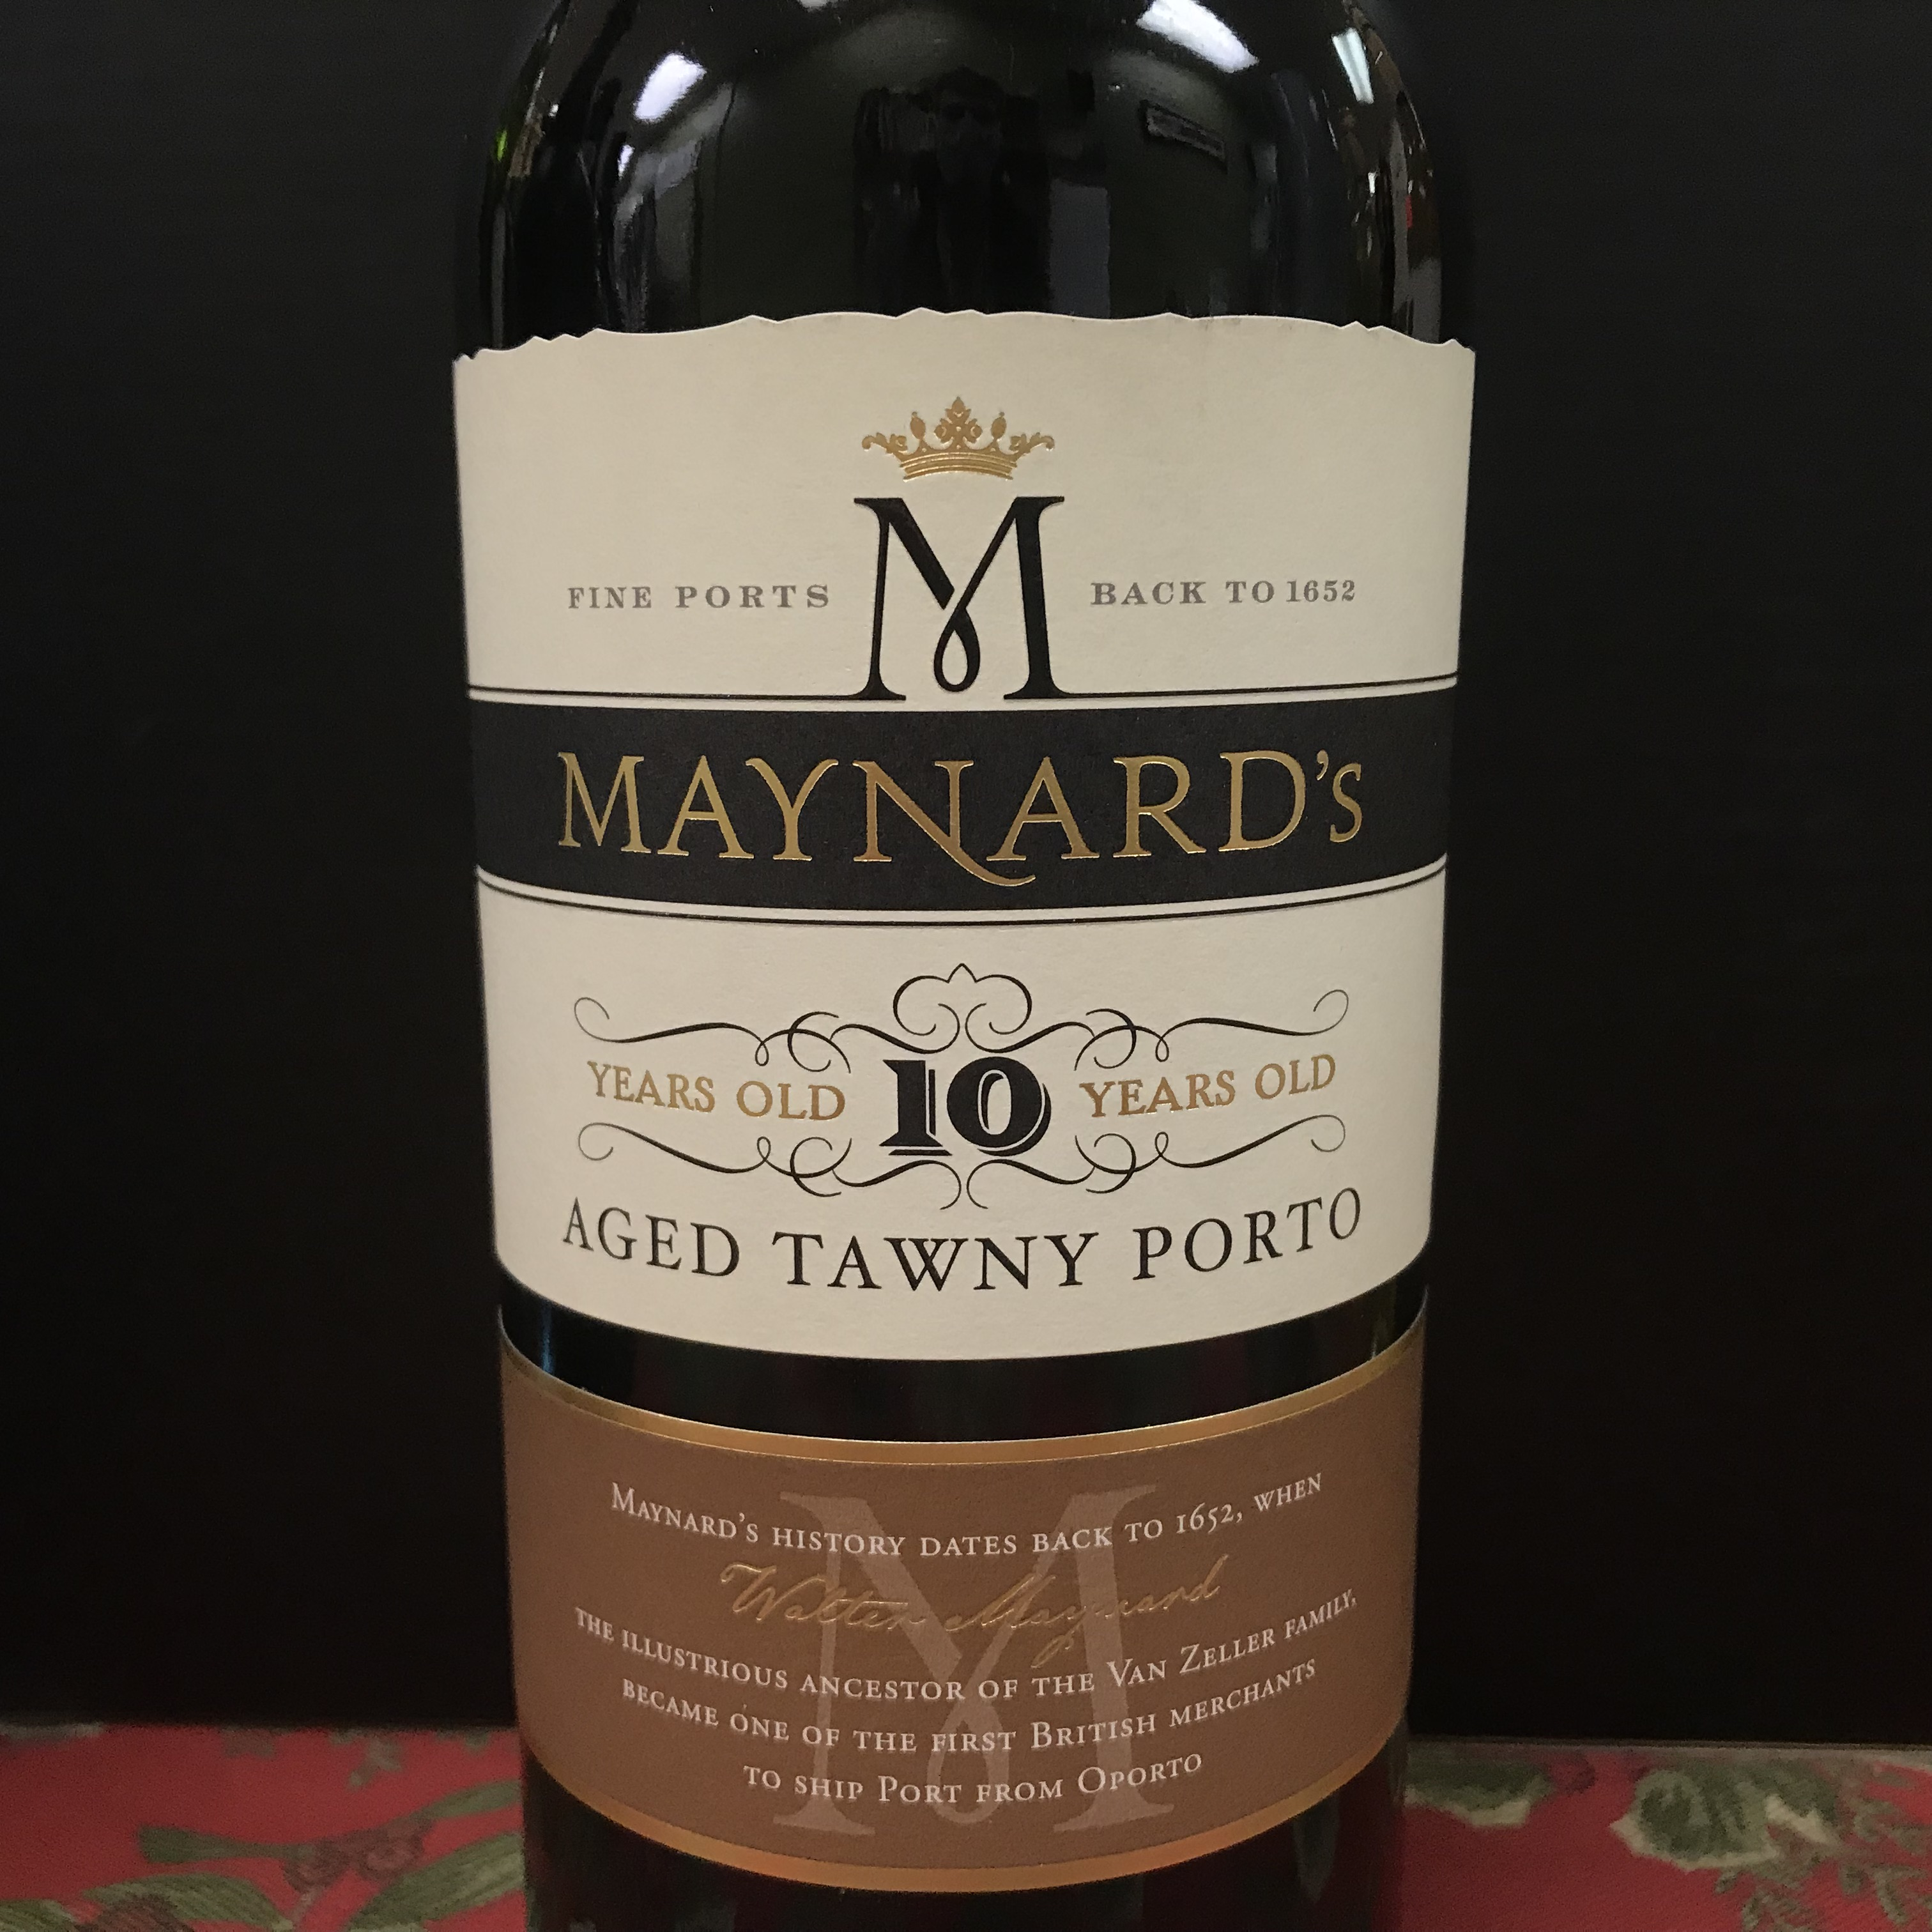 Maynard's 10 Years Old Aged Tawny Porto NV